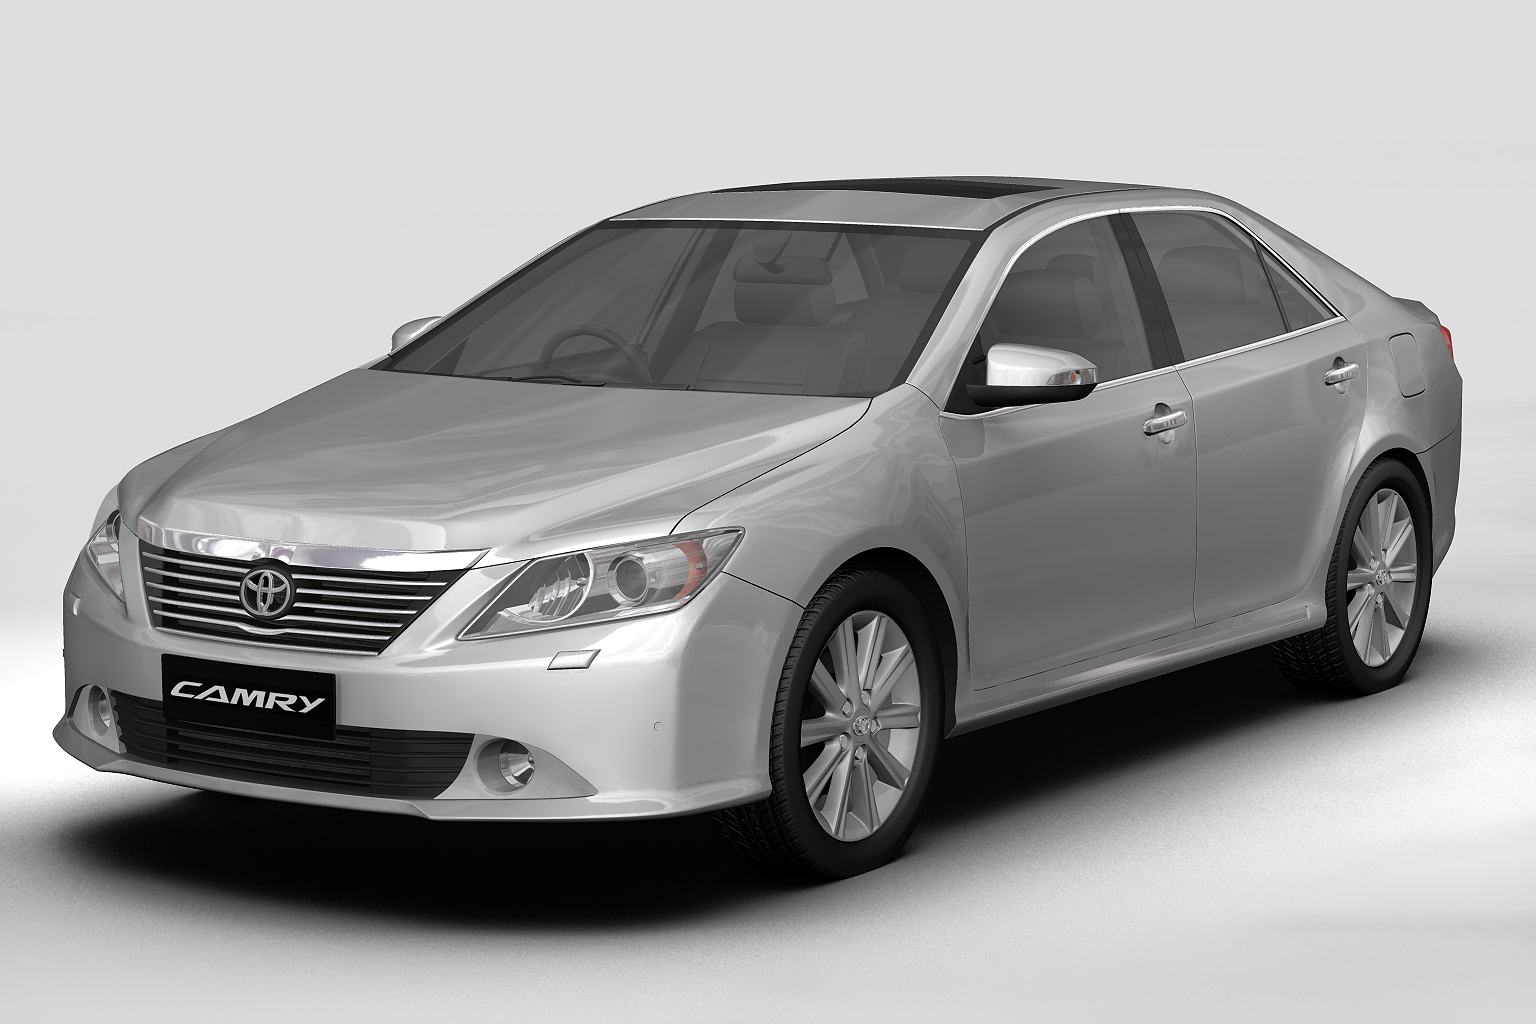 2012 toyota camry (asian) Model 3d 3ds max fbx c4d lwo hrc xsi obj 136193